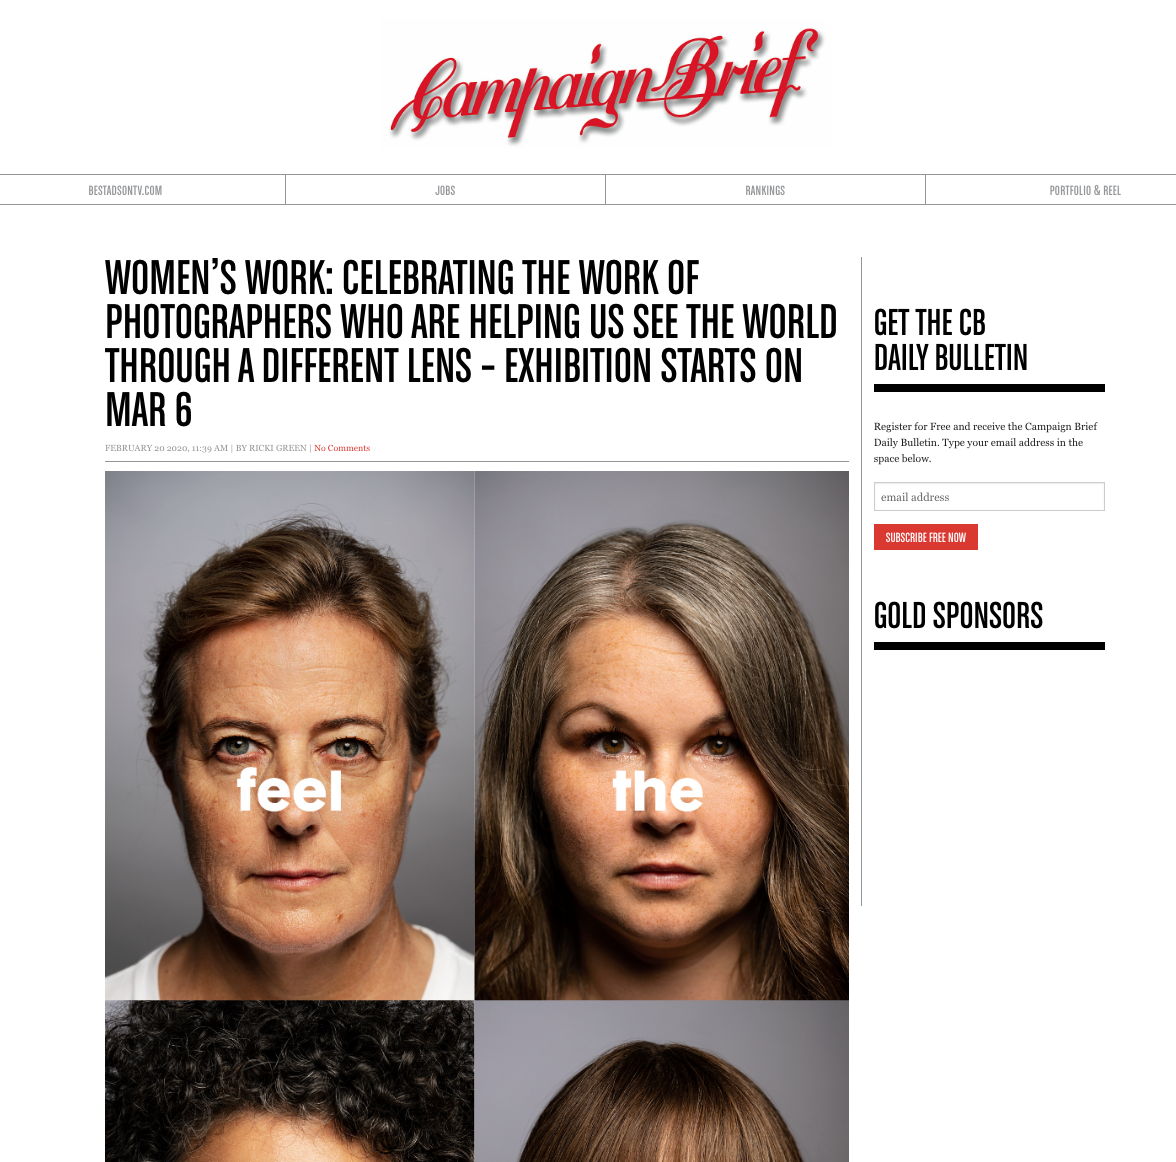 CAMPAIGN BRIEF - WOMENS WORK